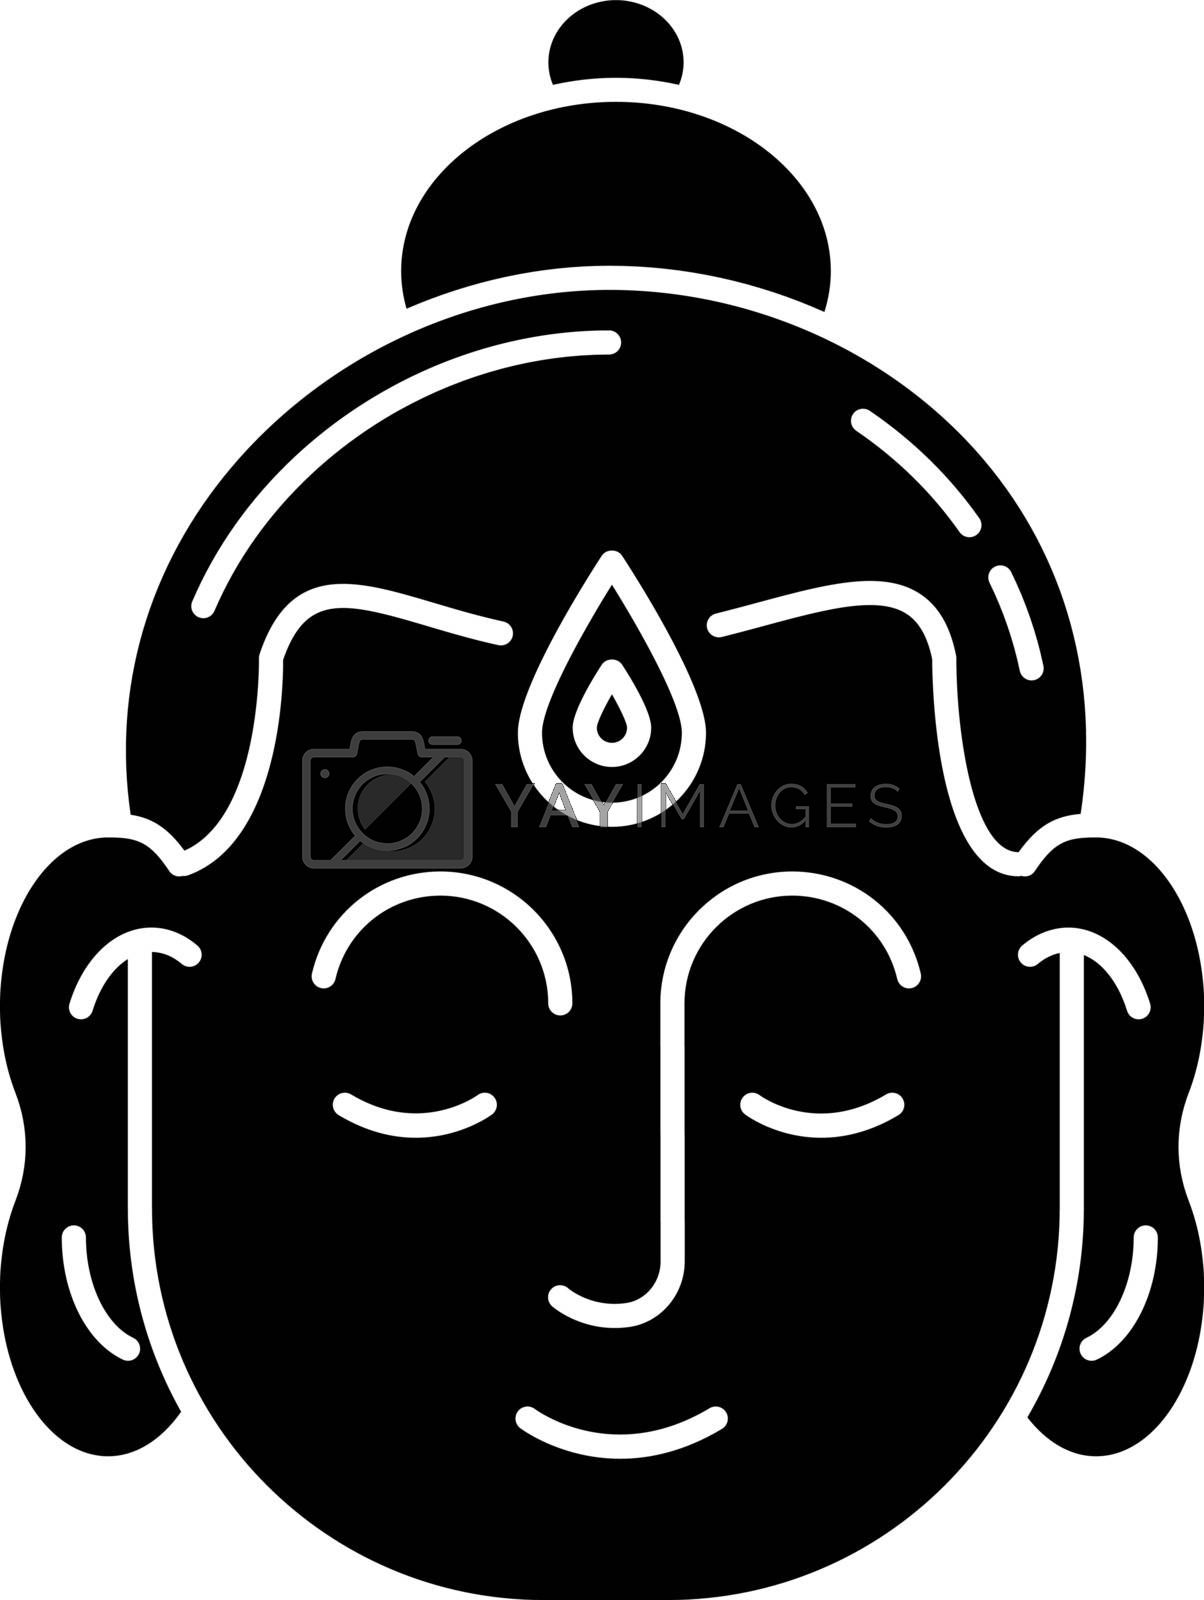 Gautama Buddha black glyph icon. Indian philosopher. Religious leader of Ancient India. Founder of Buddhism religion. Meditator. Silhouette symbol on white space. Vector isolated illustration